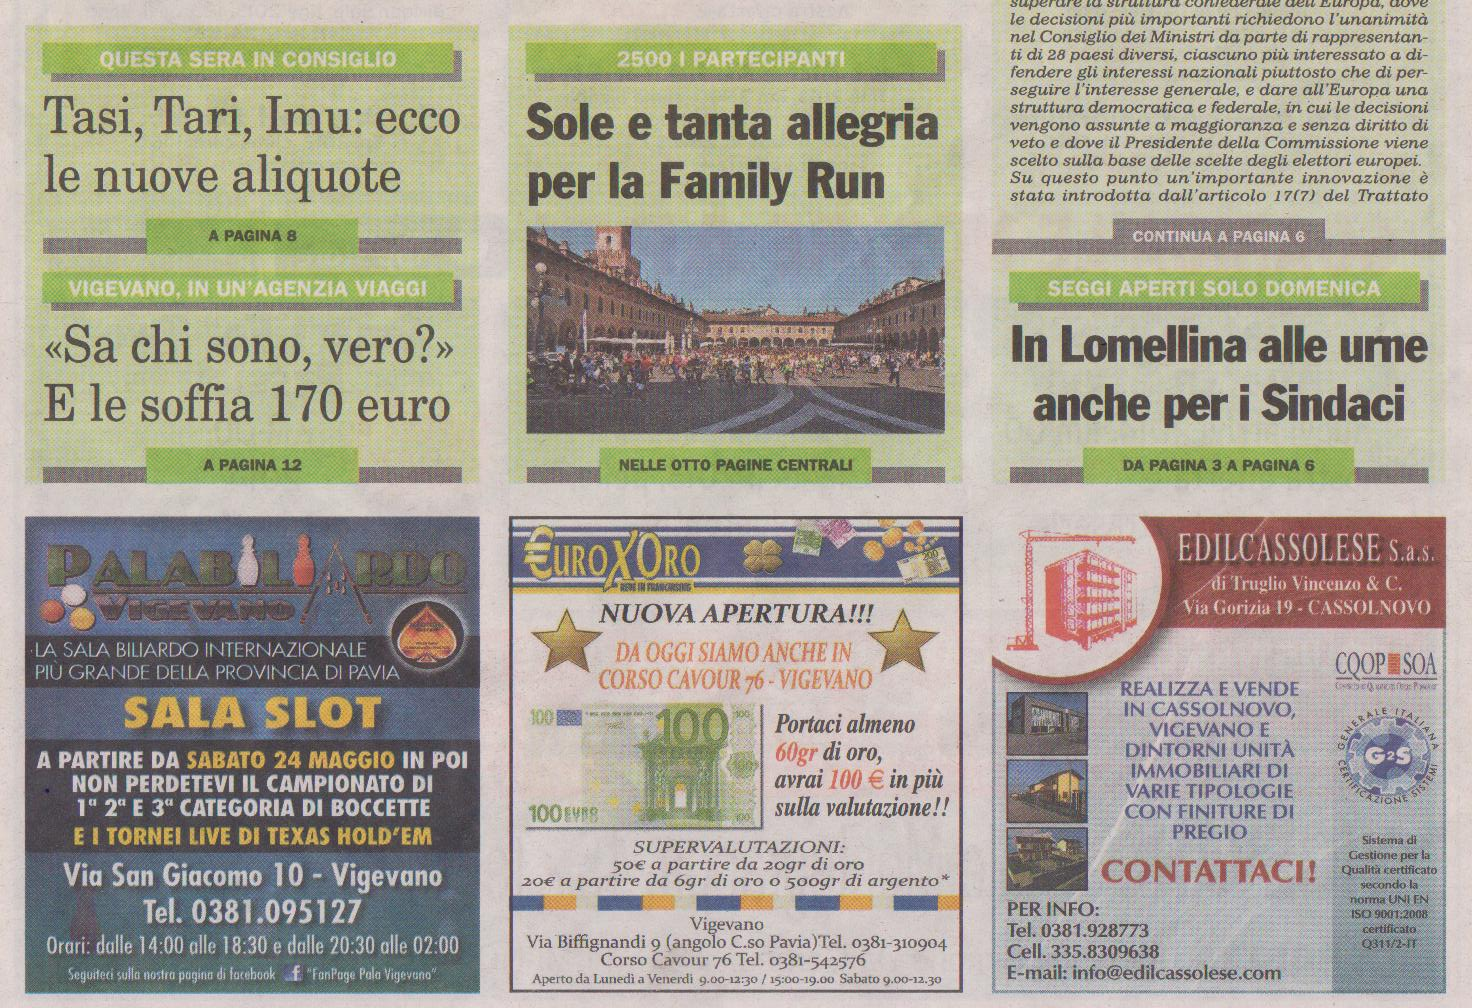 FAMILY RUN IN PRIMA PAGINA